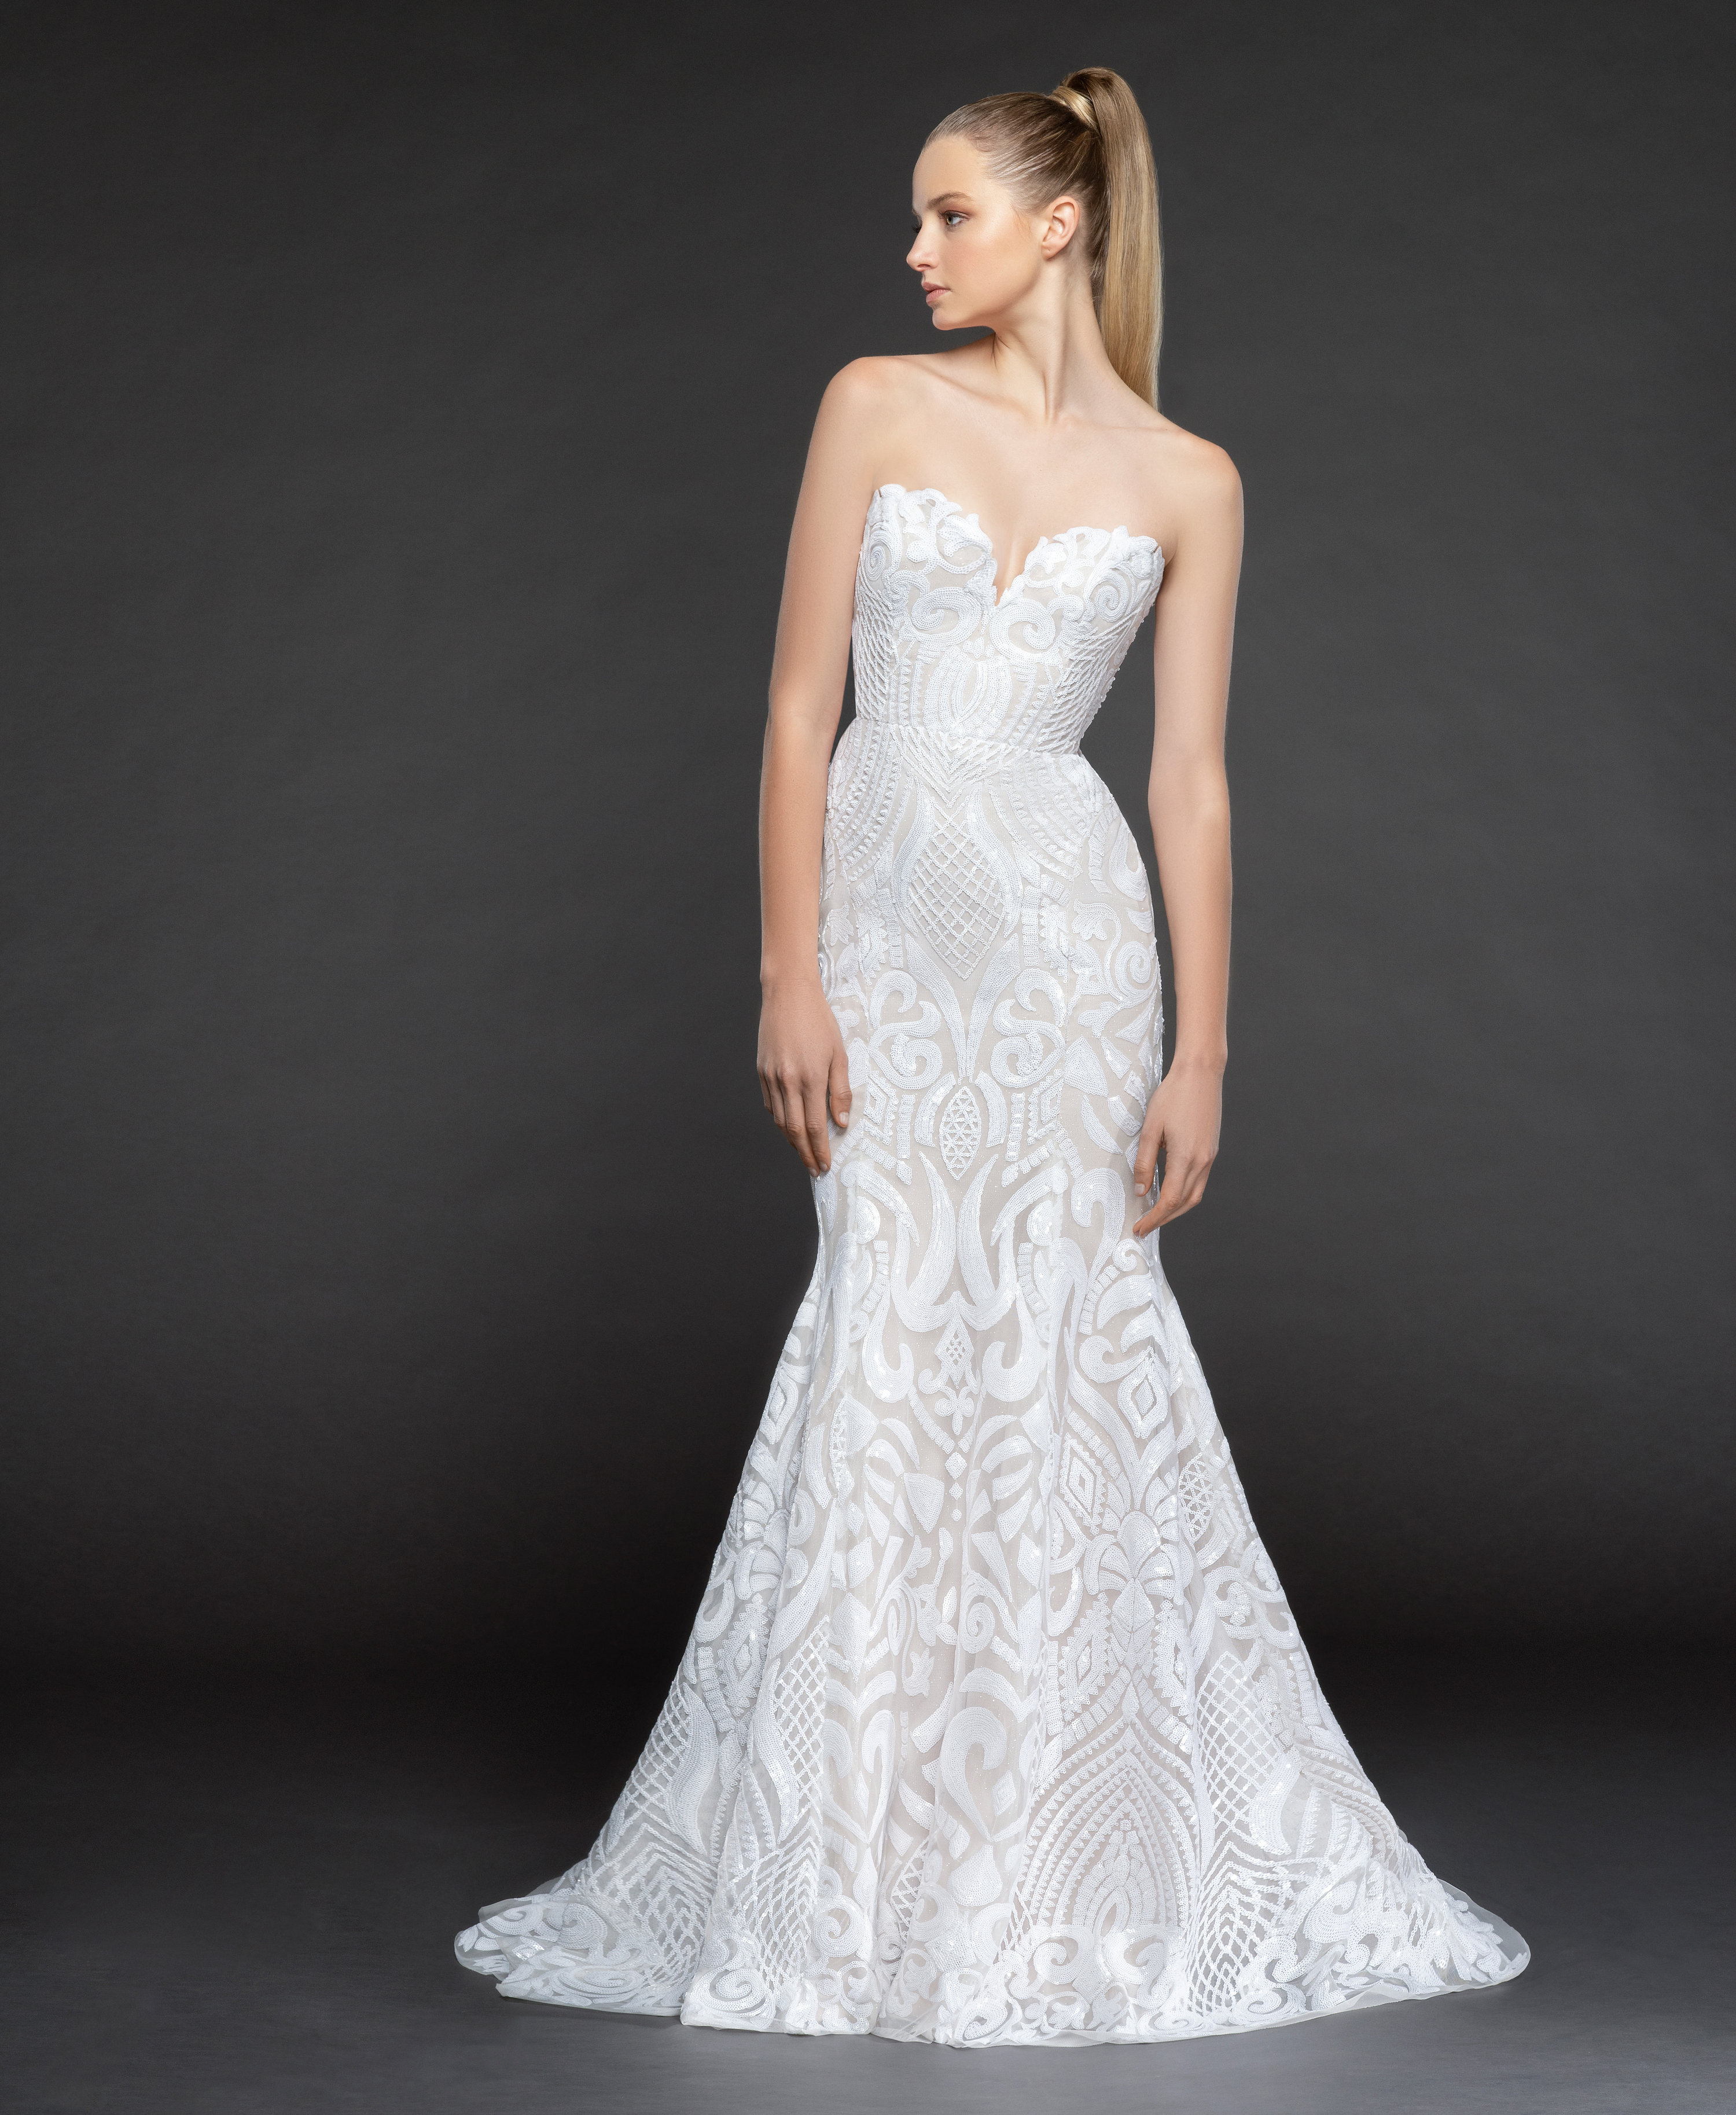 Bridal Gowns and Wedding Dresses by JLM Couture - Style 1858 Safyr